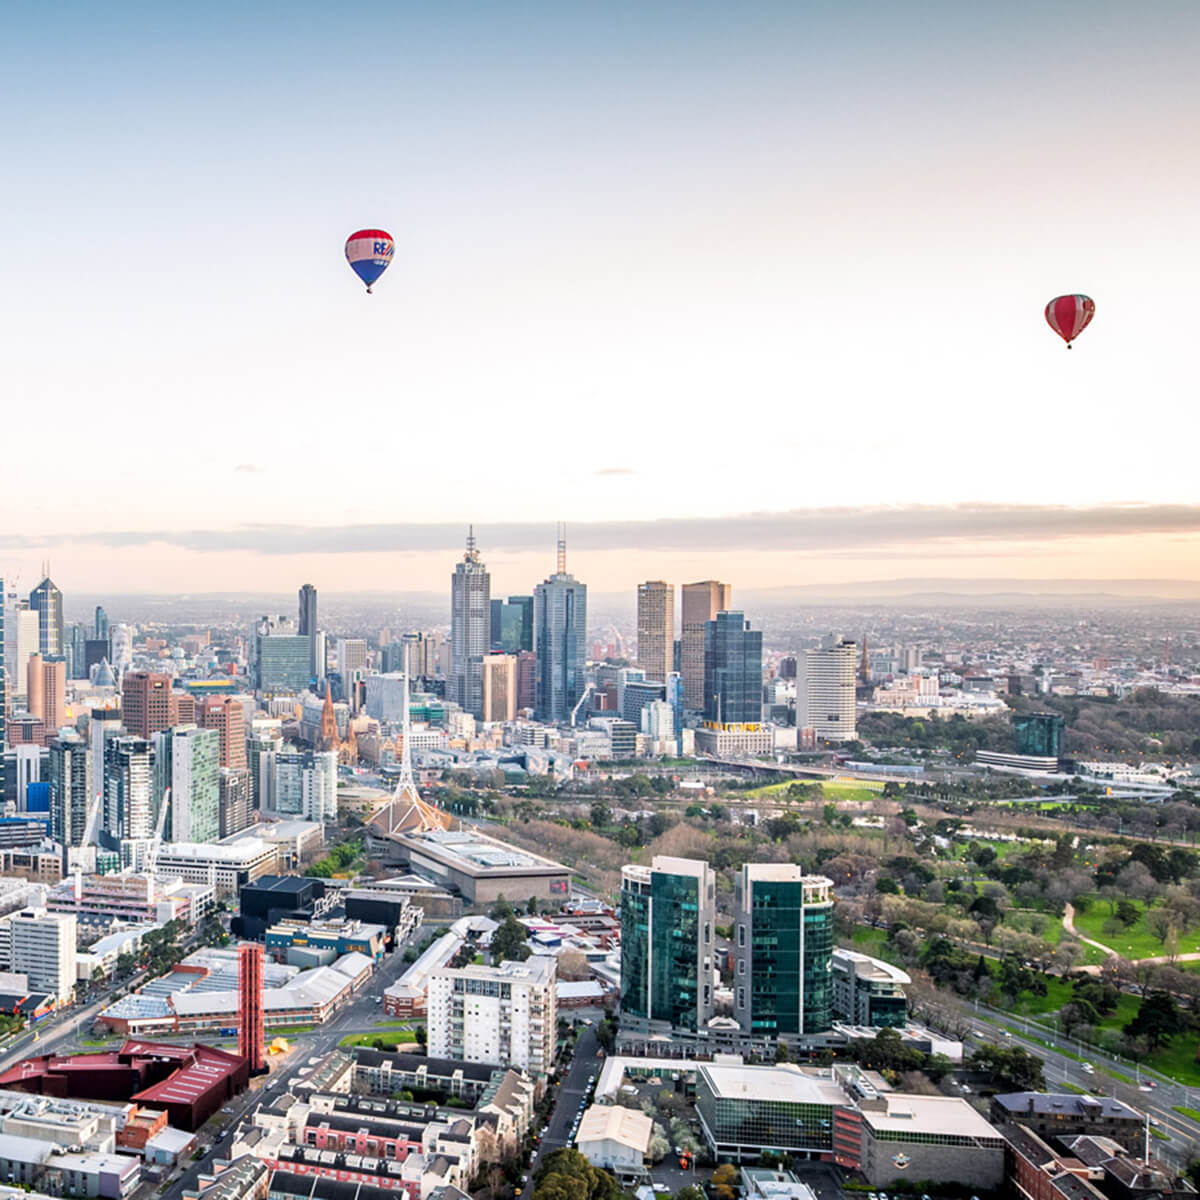 Image of hot air balloons over Melbourne CBD